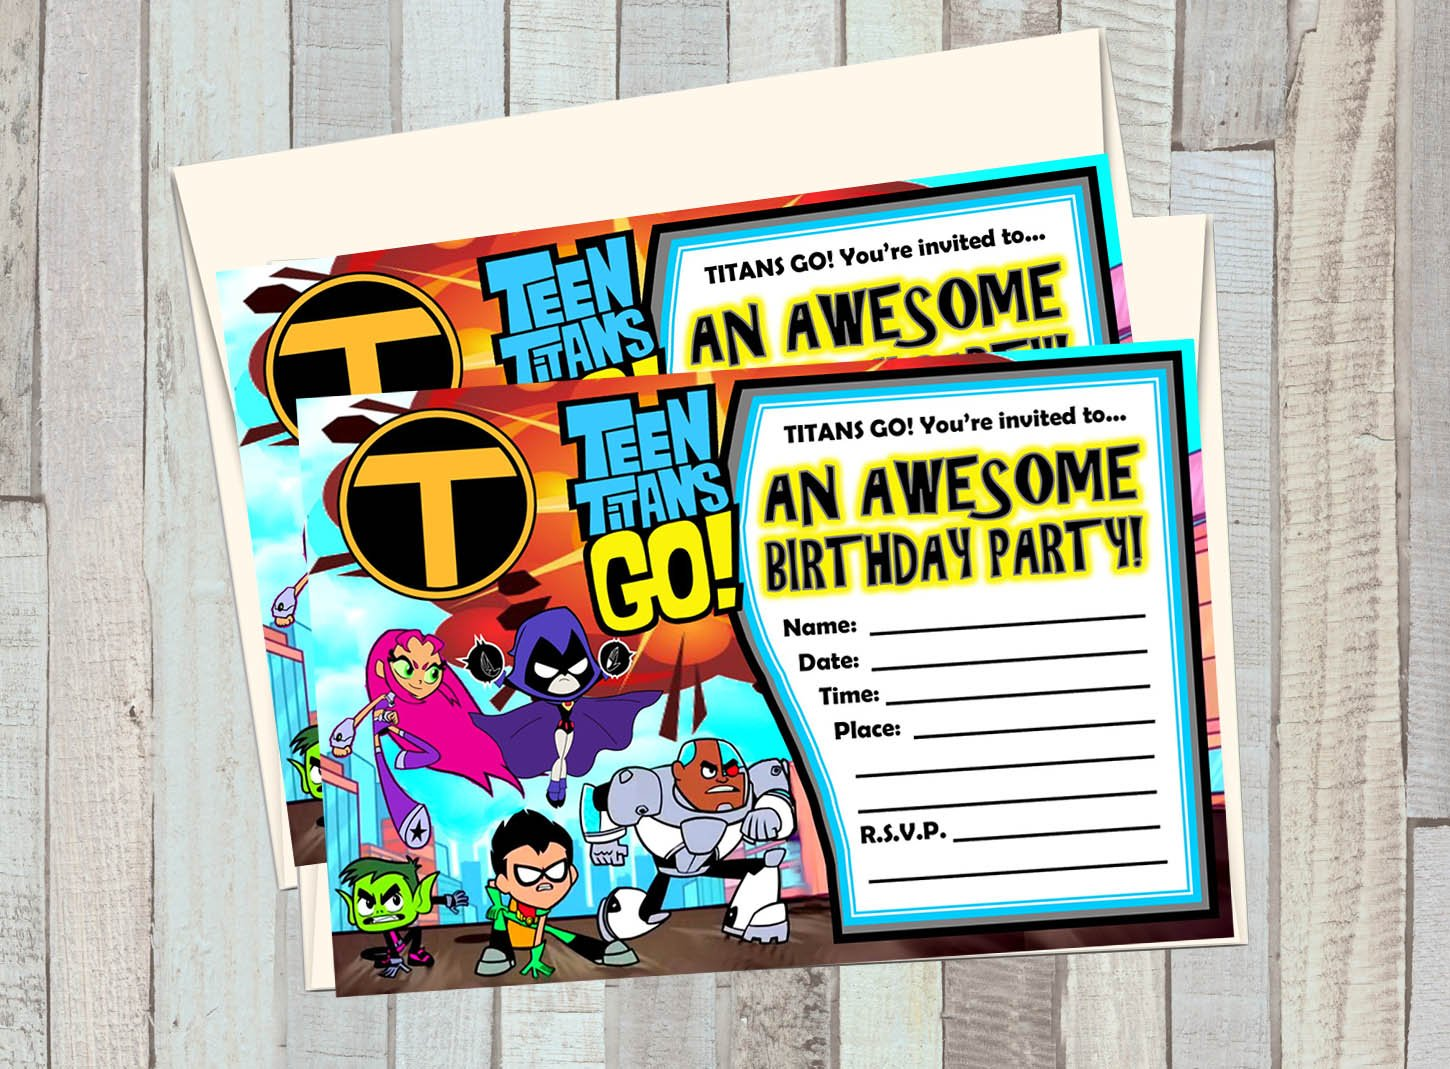 12 TEEN TITANS GO Birthday Invitations (12 5x7in Cards, 12 matching white envelopes)